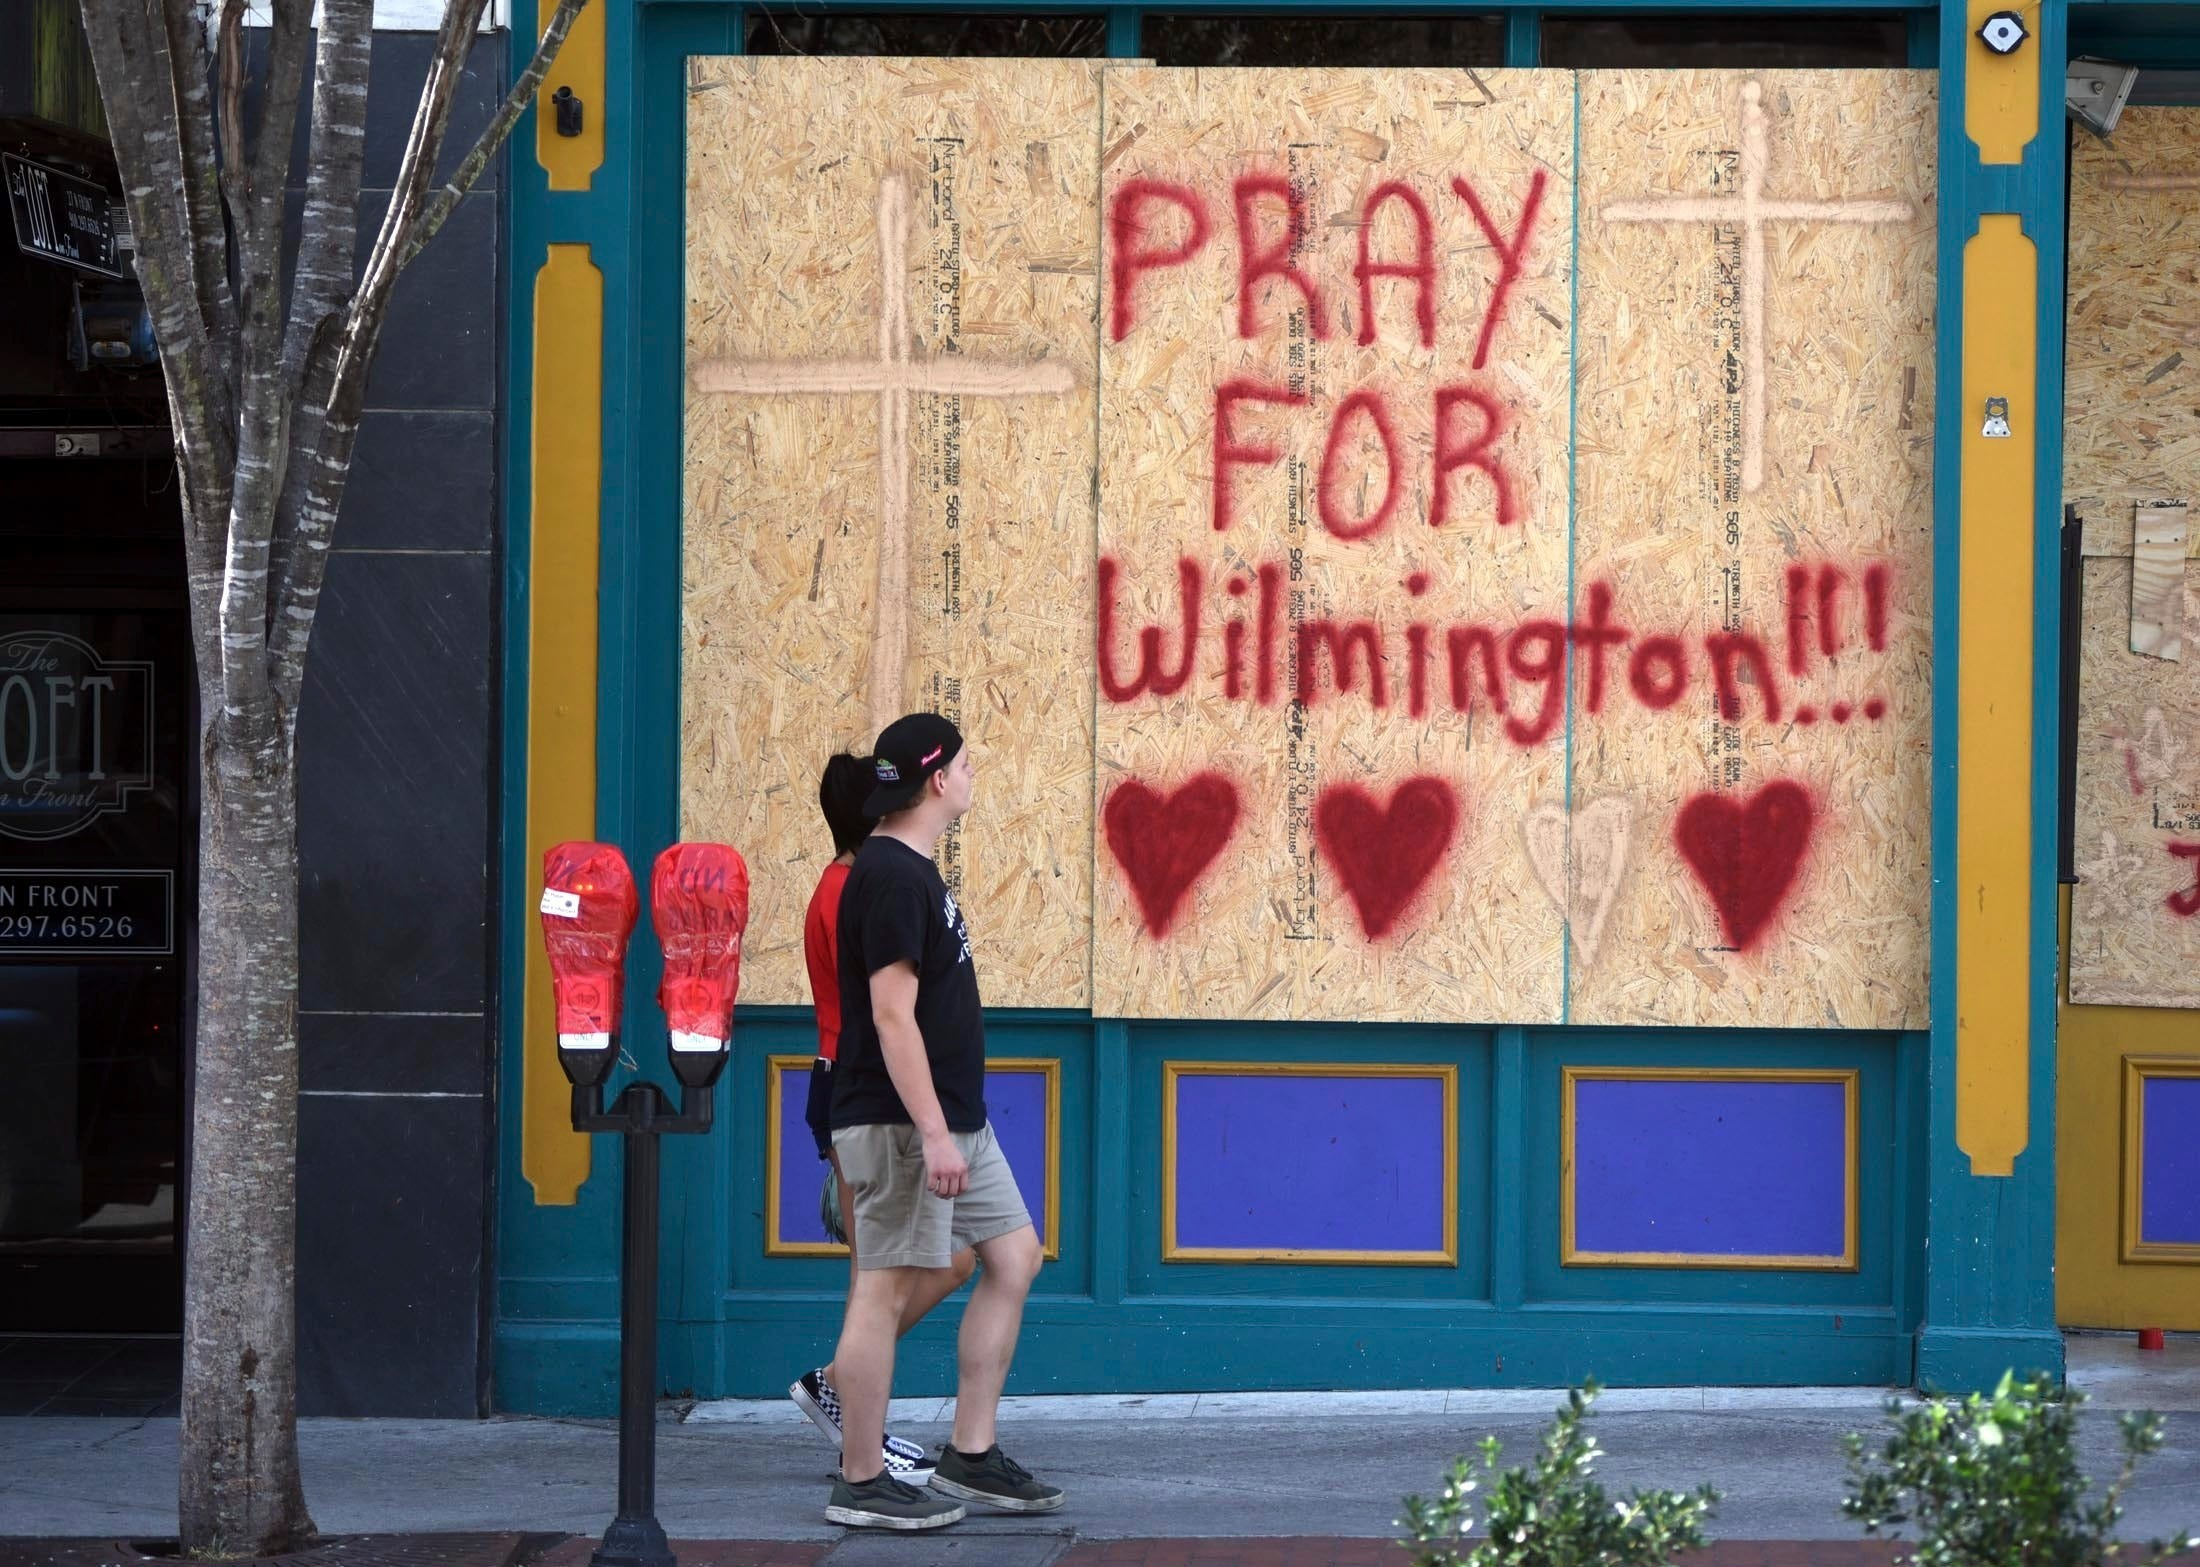 People walk by the boarded up front windows of Bourbon Street in preparation for Hurricane Florence in Wilmington, N.C., Wednesday, Sept. 12, 2018. The effects of Hurricane Florence in Southeastern North Carolina are expected to begin Thursday.